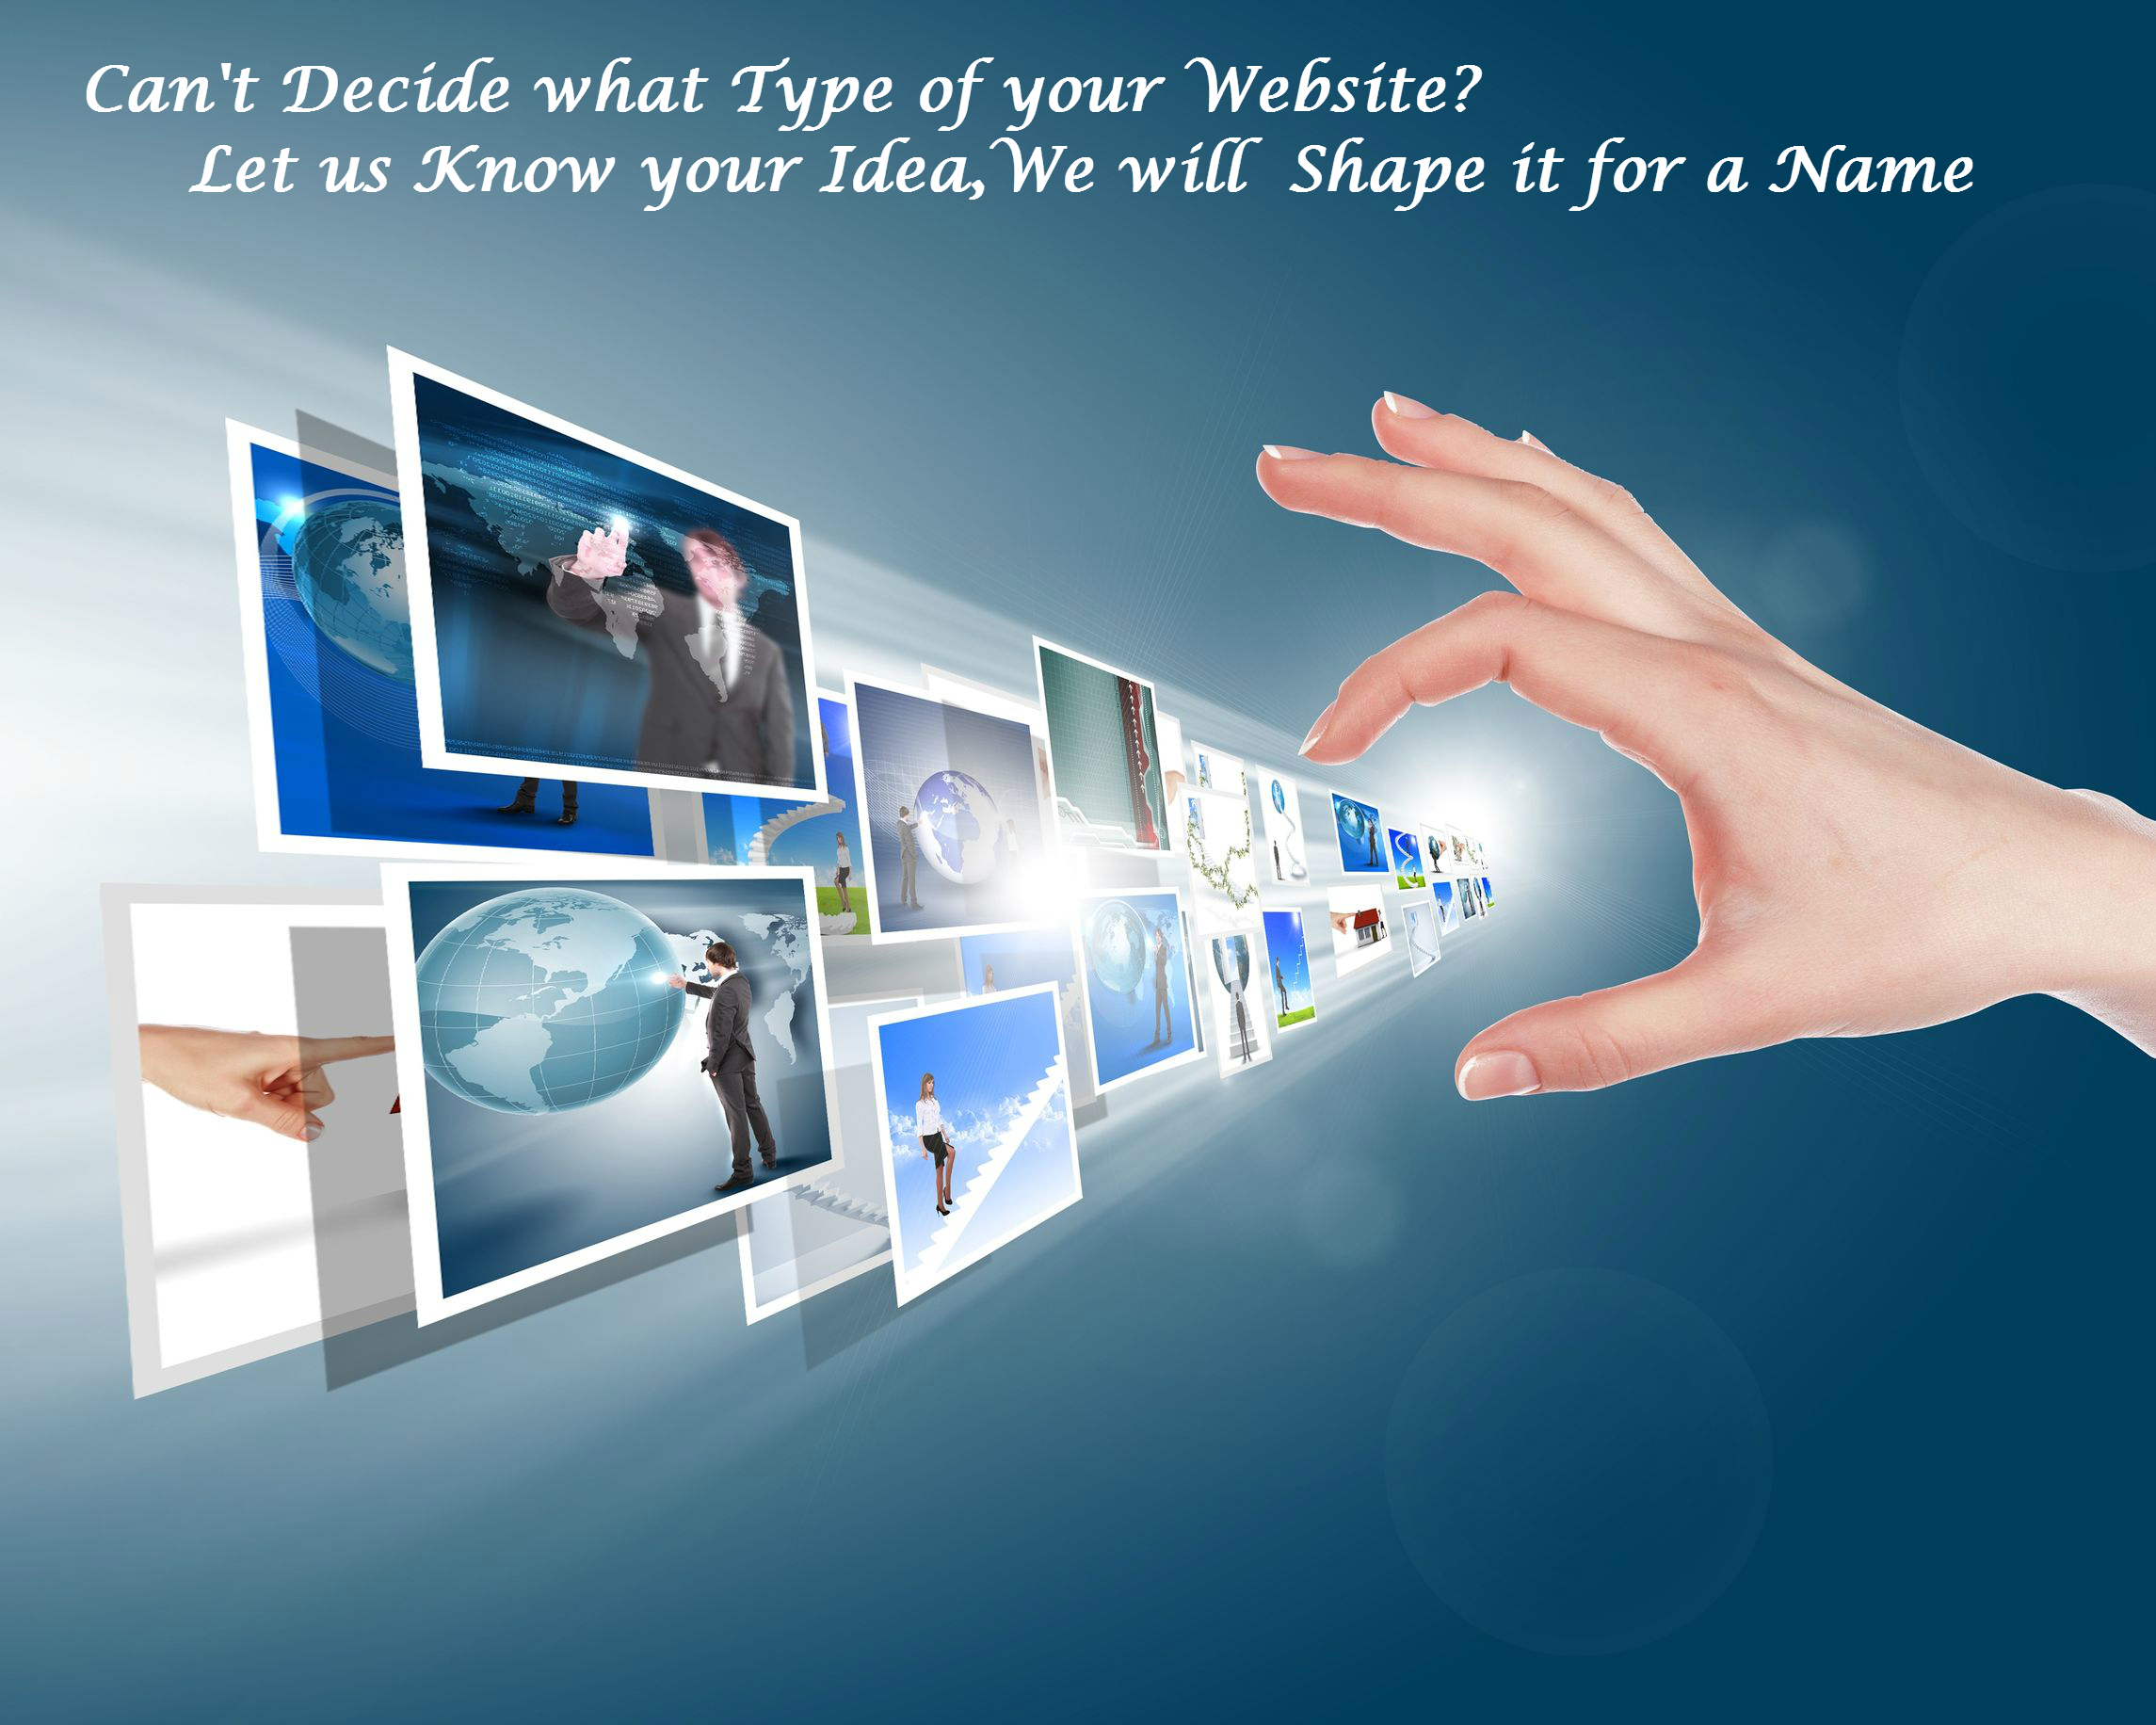 Can't decide what your website type is? Let us know your idea, we'll shape it for a name